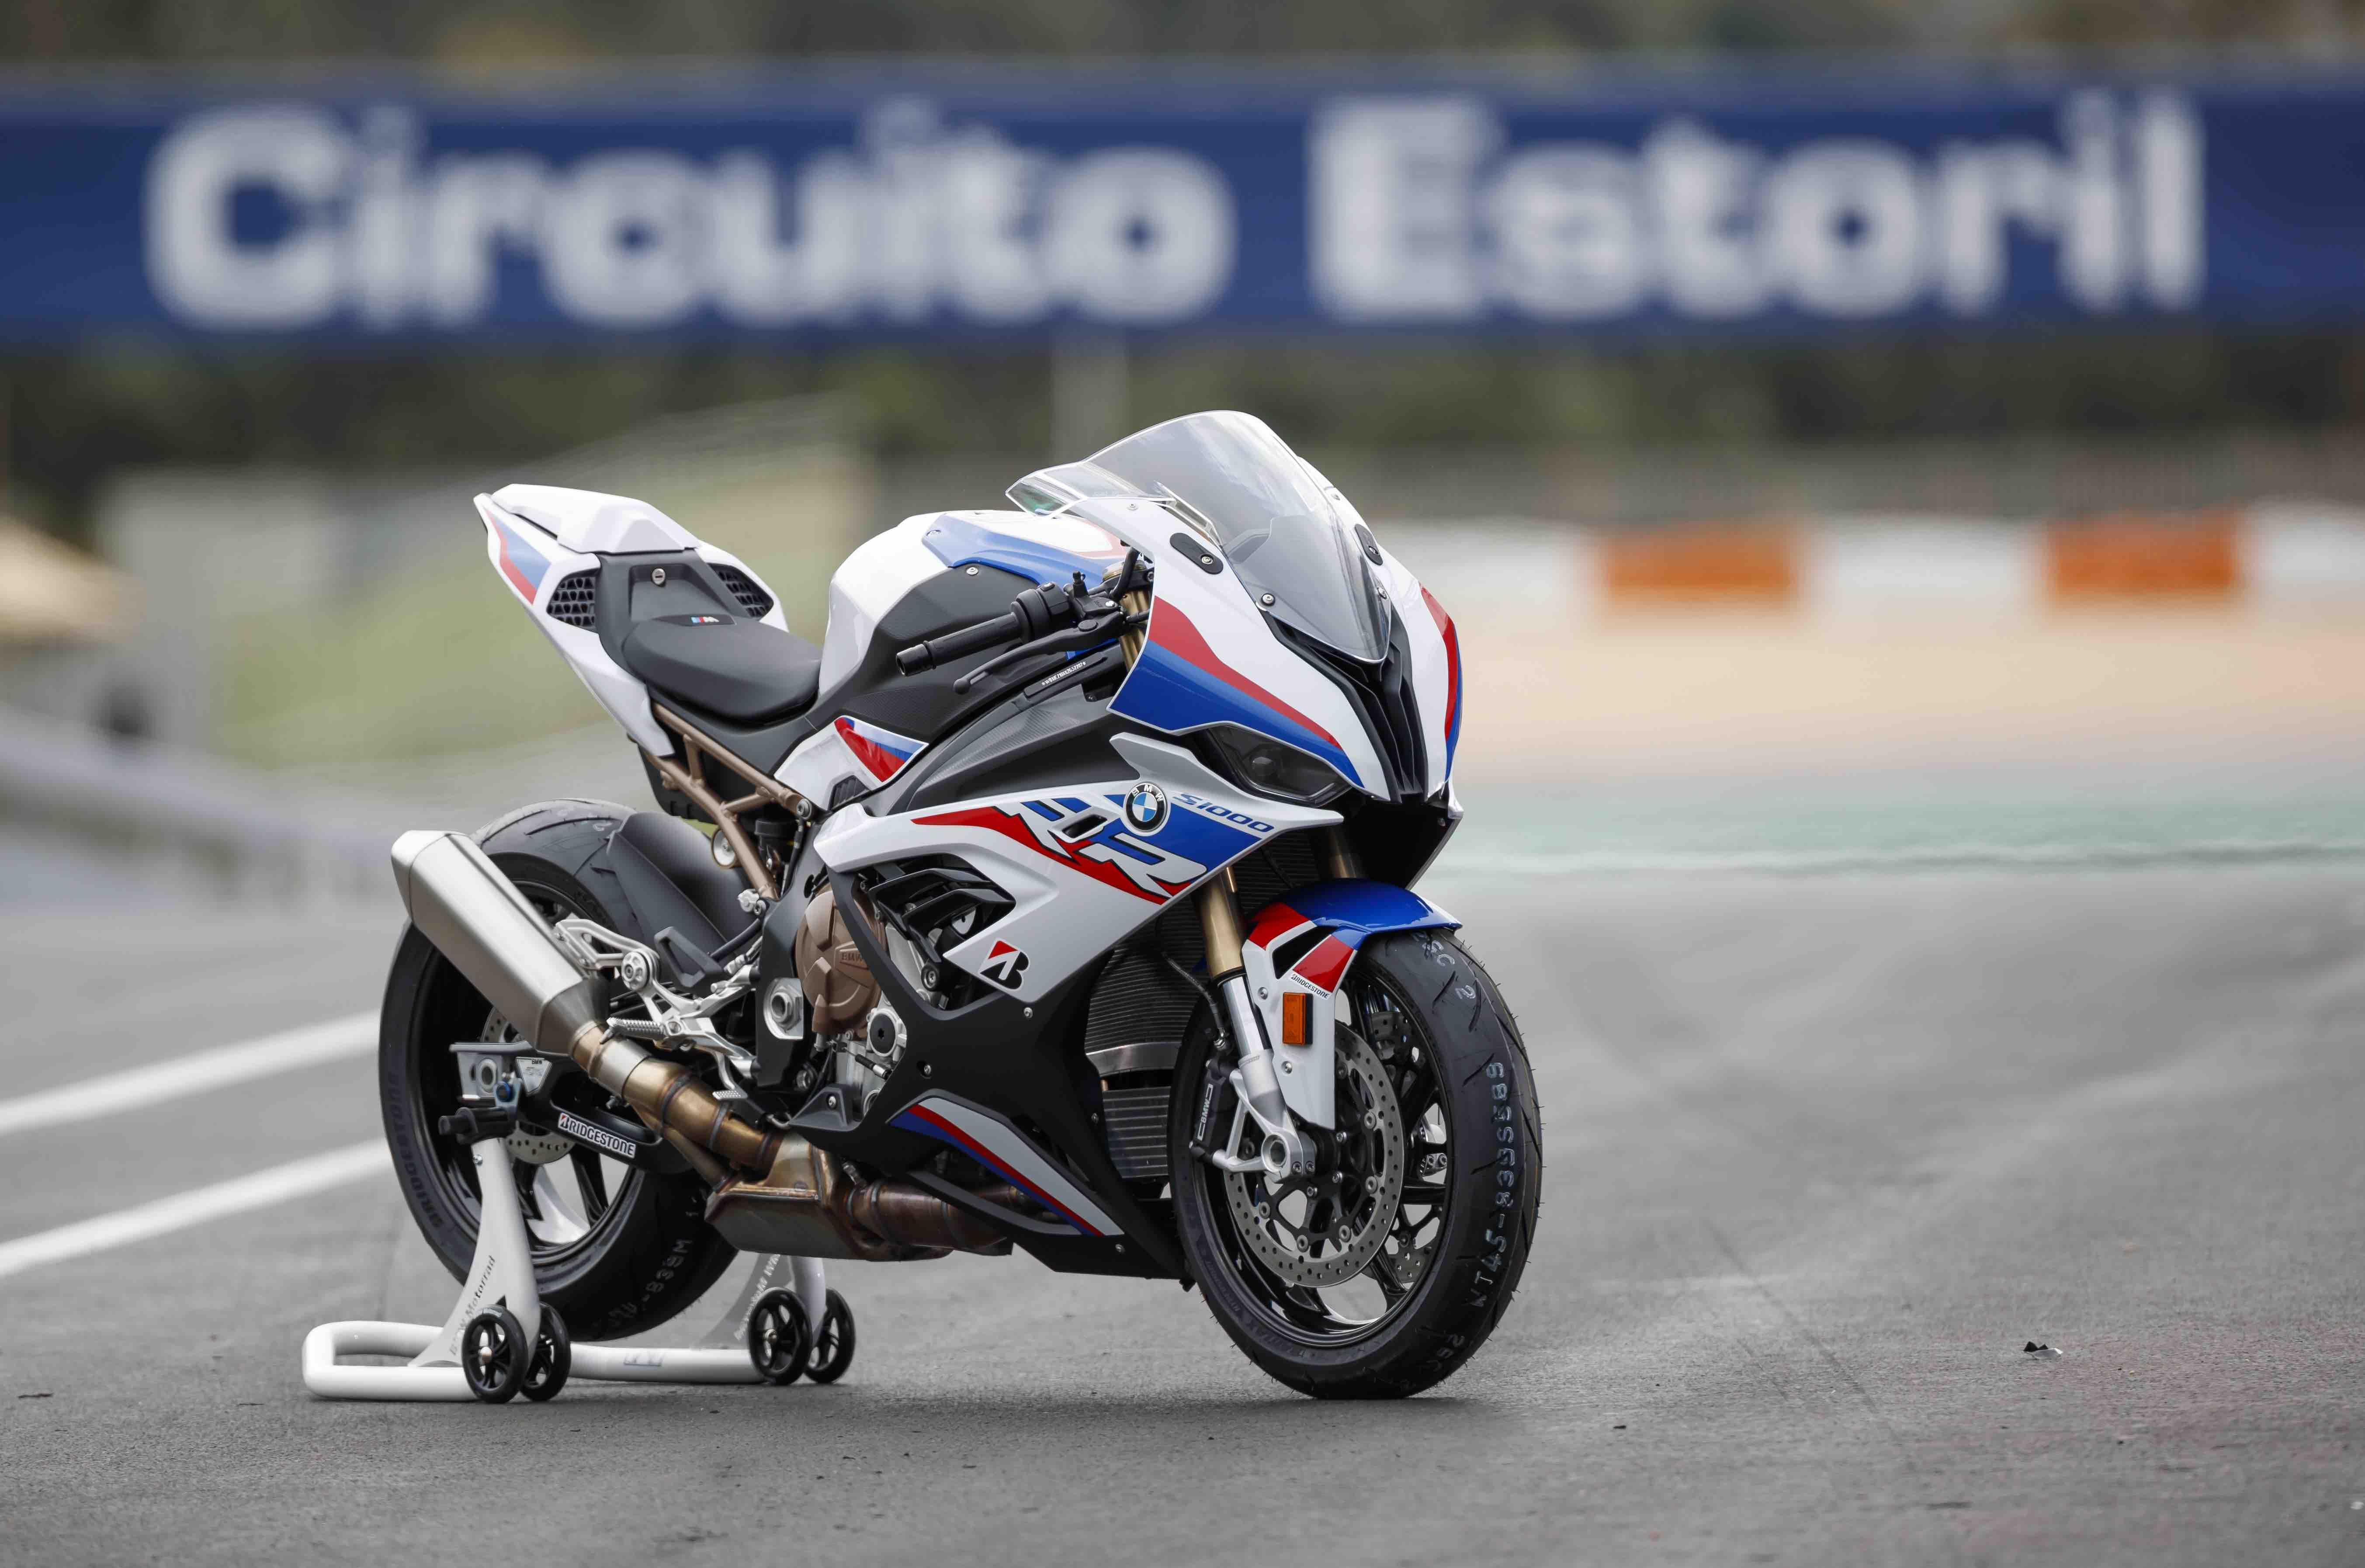 BMW S1000RR 2019 at Estoril